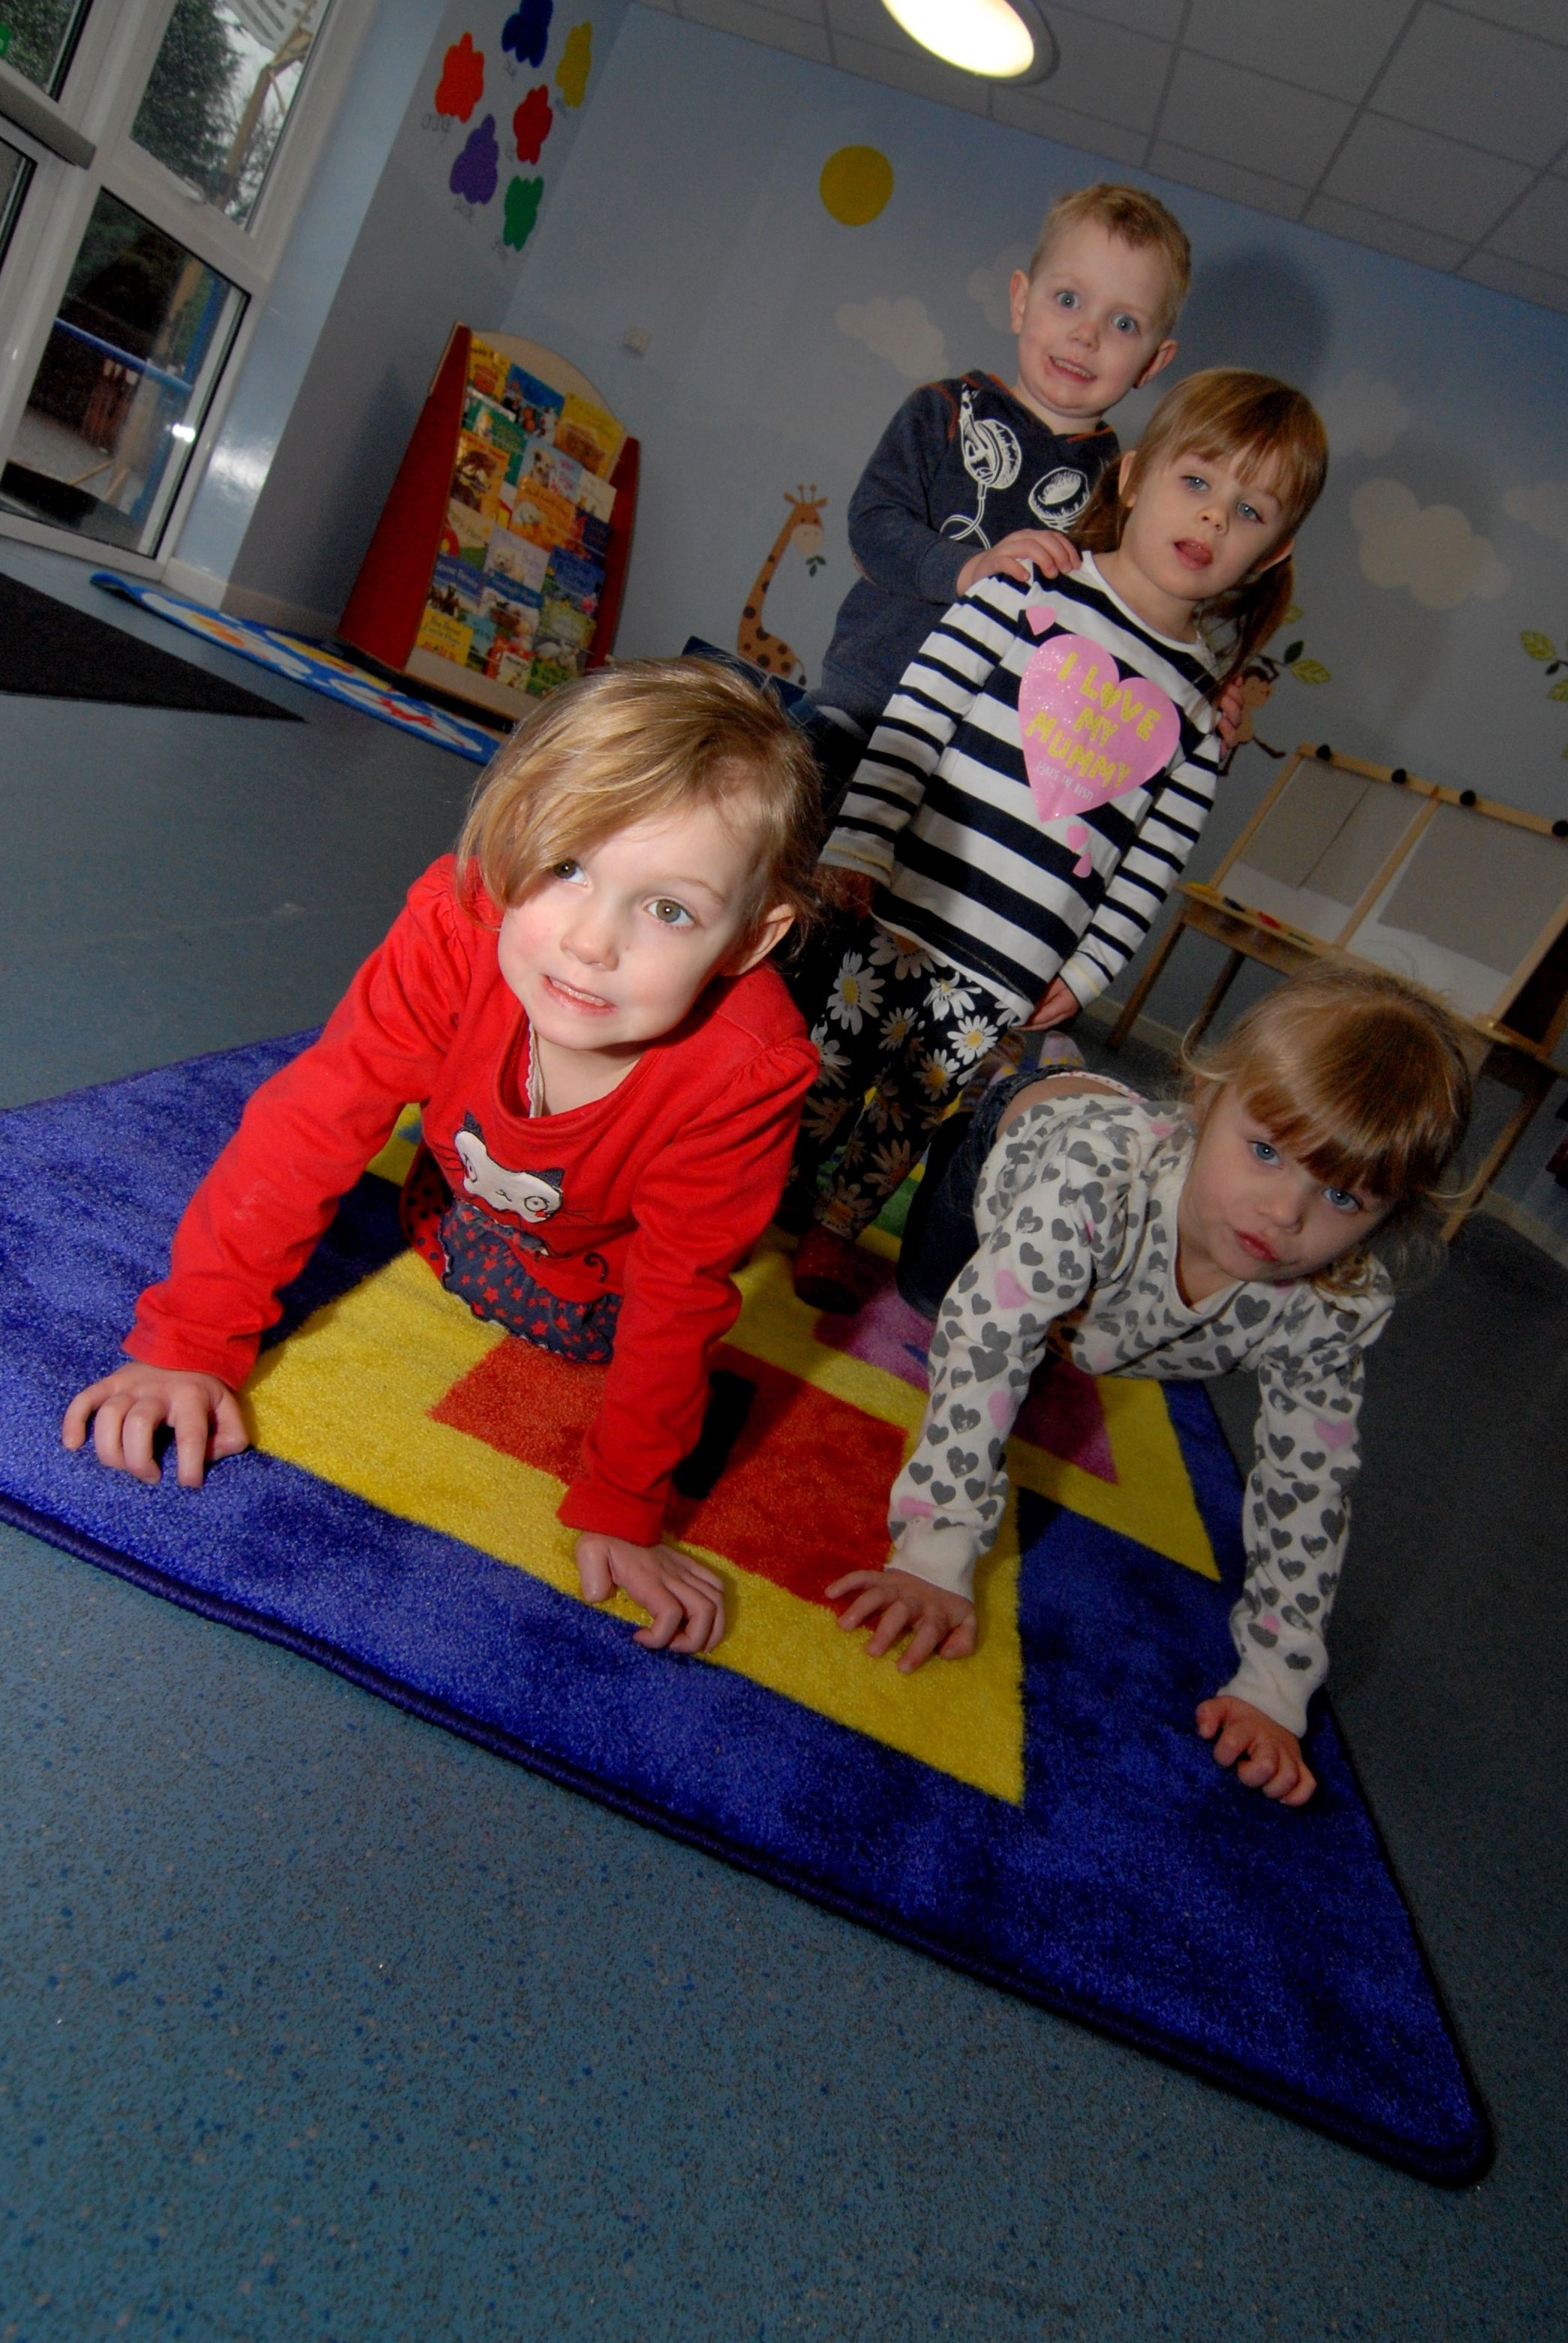 14/02/14. Callow End Primary School has received a £1,500 grant from Powick Parish Council to help set up a new pre-school group. Left to right - Harriet Ray aged 4, Connor Napierski 3, Emileigh Humphries 3 and Frankie Humphries 3. Picture by Nick T